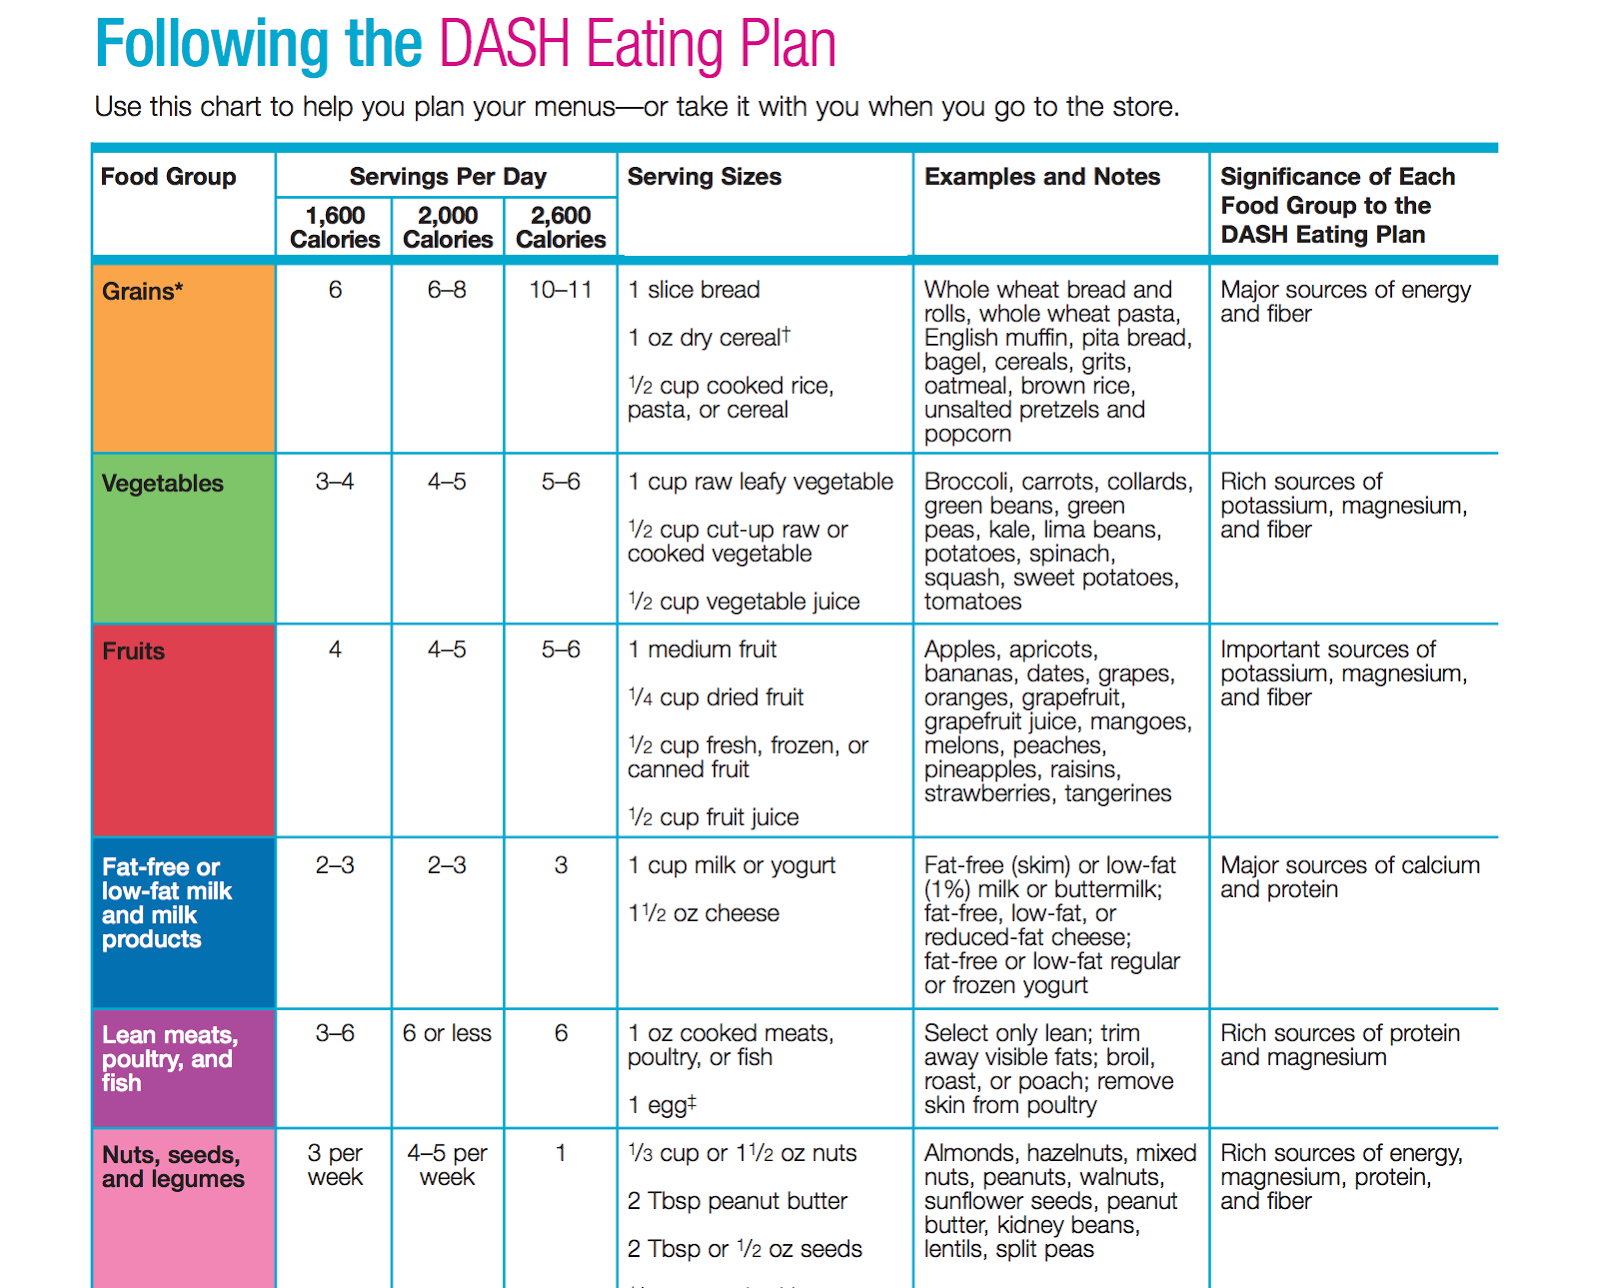 The DASH Diet: What It Is and What the Research Says